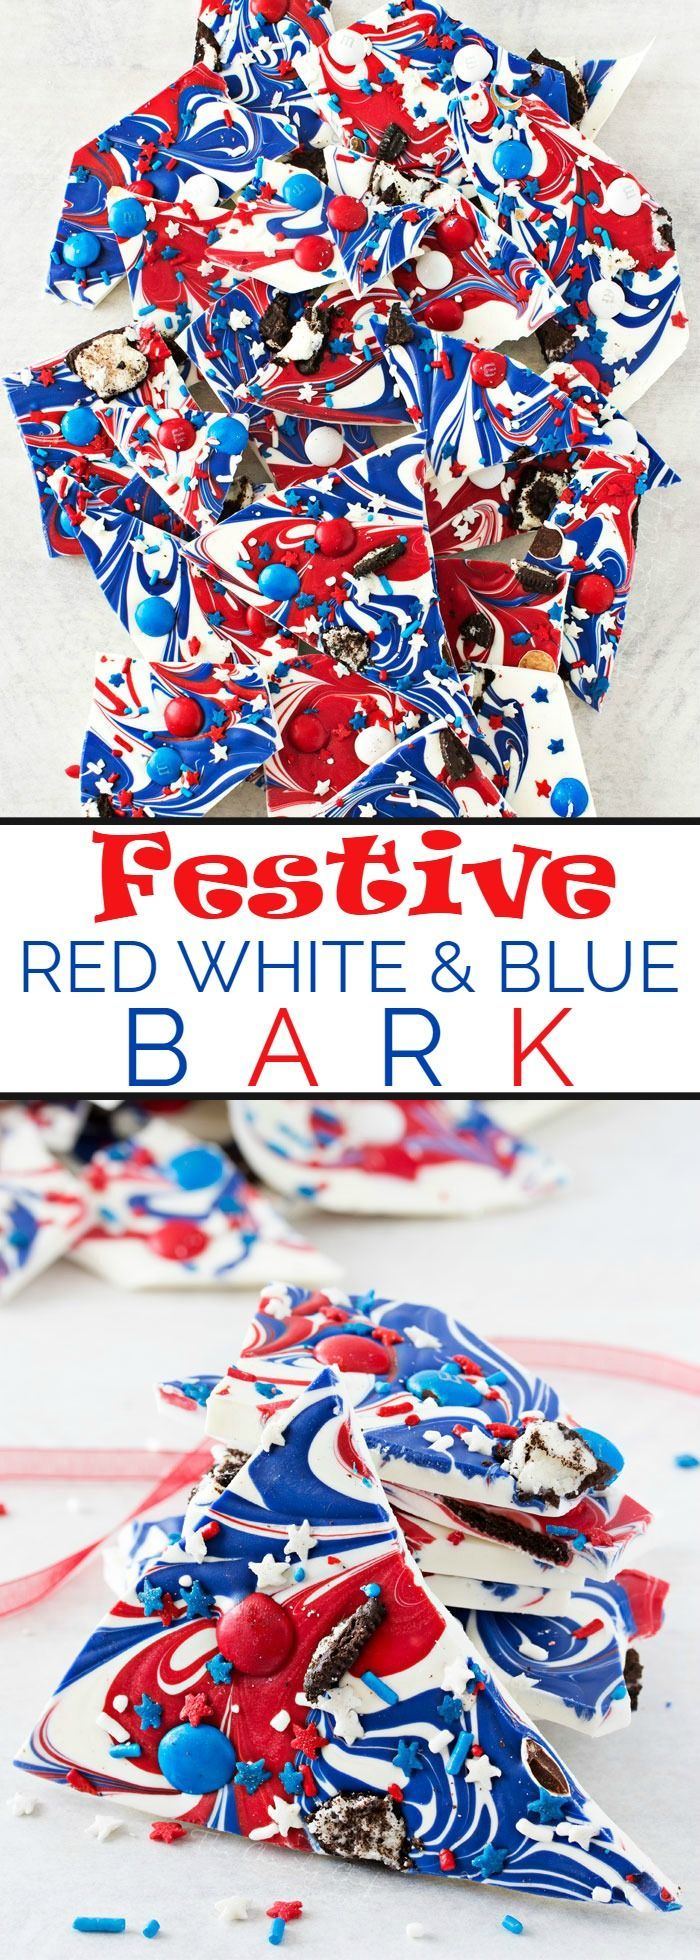 Festive Red White and Blue Bark | This simple and fun no-bake bark recipe is perfect for Memorial Day or Independence Day! So simple, even your kids can make it! | thechunkychef.com